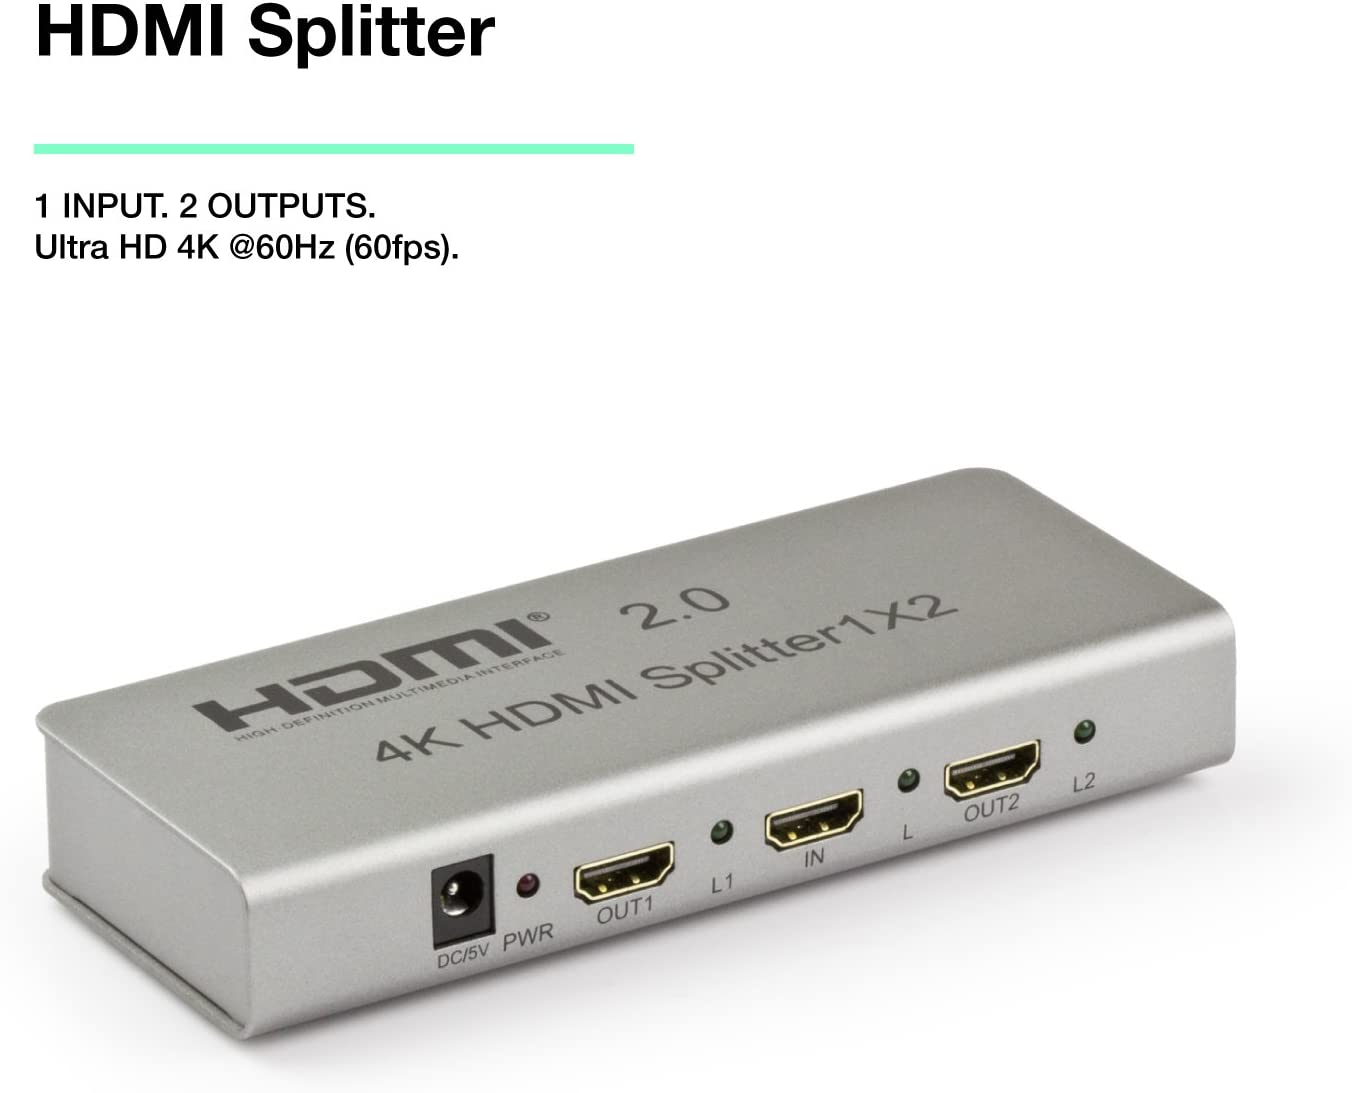 Expert Connect 1x2 HDMI Splitter | 2 Port | 1 in - 2 Out | Ultra HD 4K/2K @ 60Hz (60 fps), HDR | HDMI 2.0, HDCP 2.2 | Full HD/3D | 1080P | DTS | Digital Audio | Direct TV | 18 Gbps Bandwidth